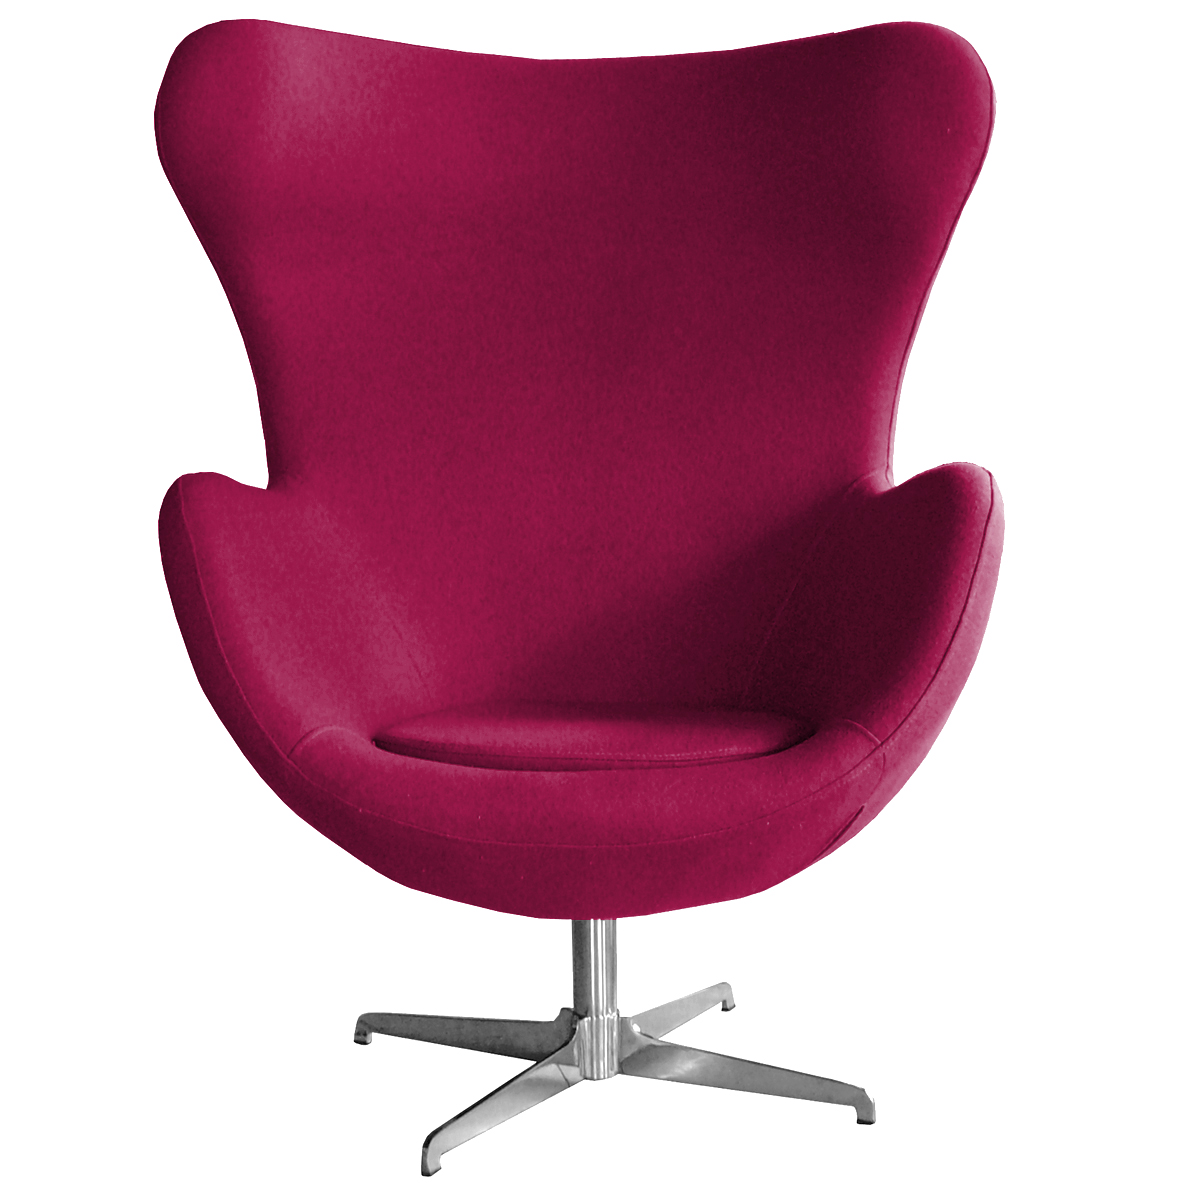 Arne Jacobsen Egg Chair Ebay Retro Arne Jacobsen Inspired Designer Swivel Wool Egg